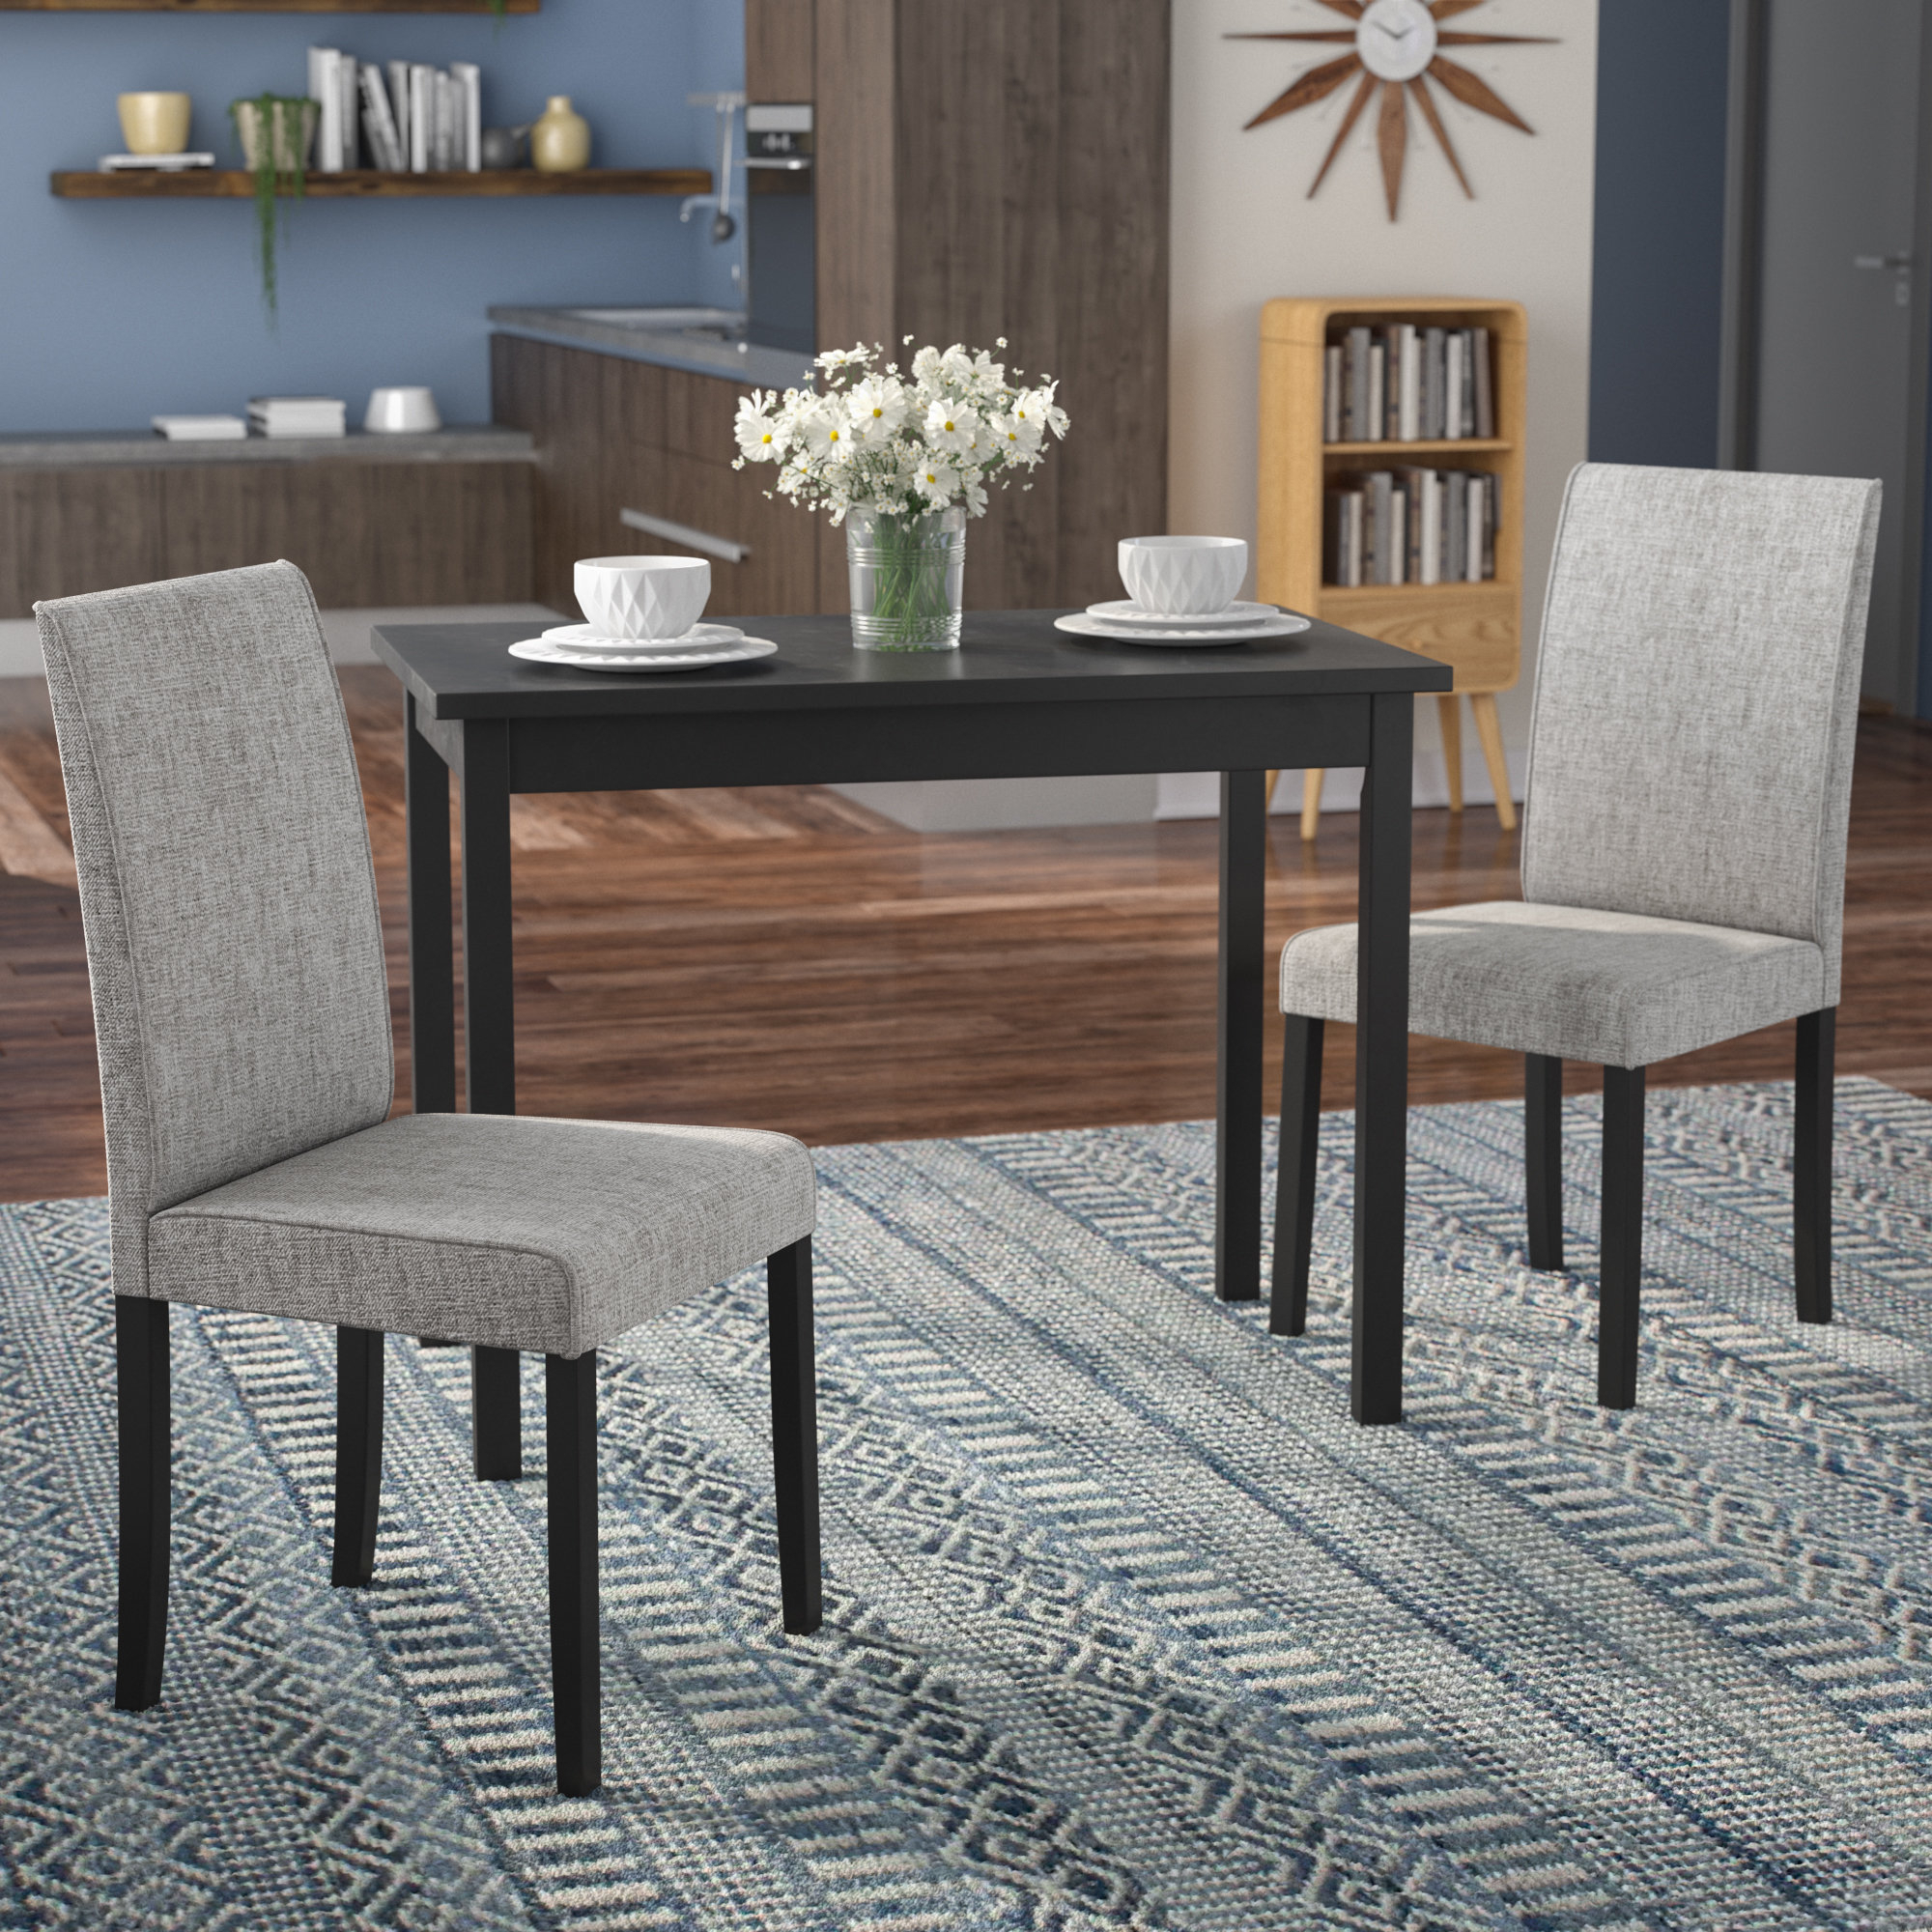 Darvell 3 Piece Dining Set For Well Known 3 Piece Dining Sets (View 8 of 20)